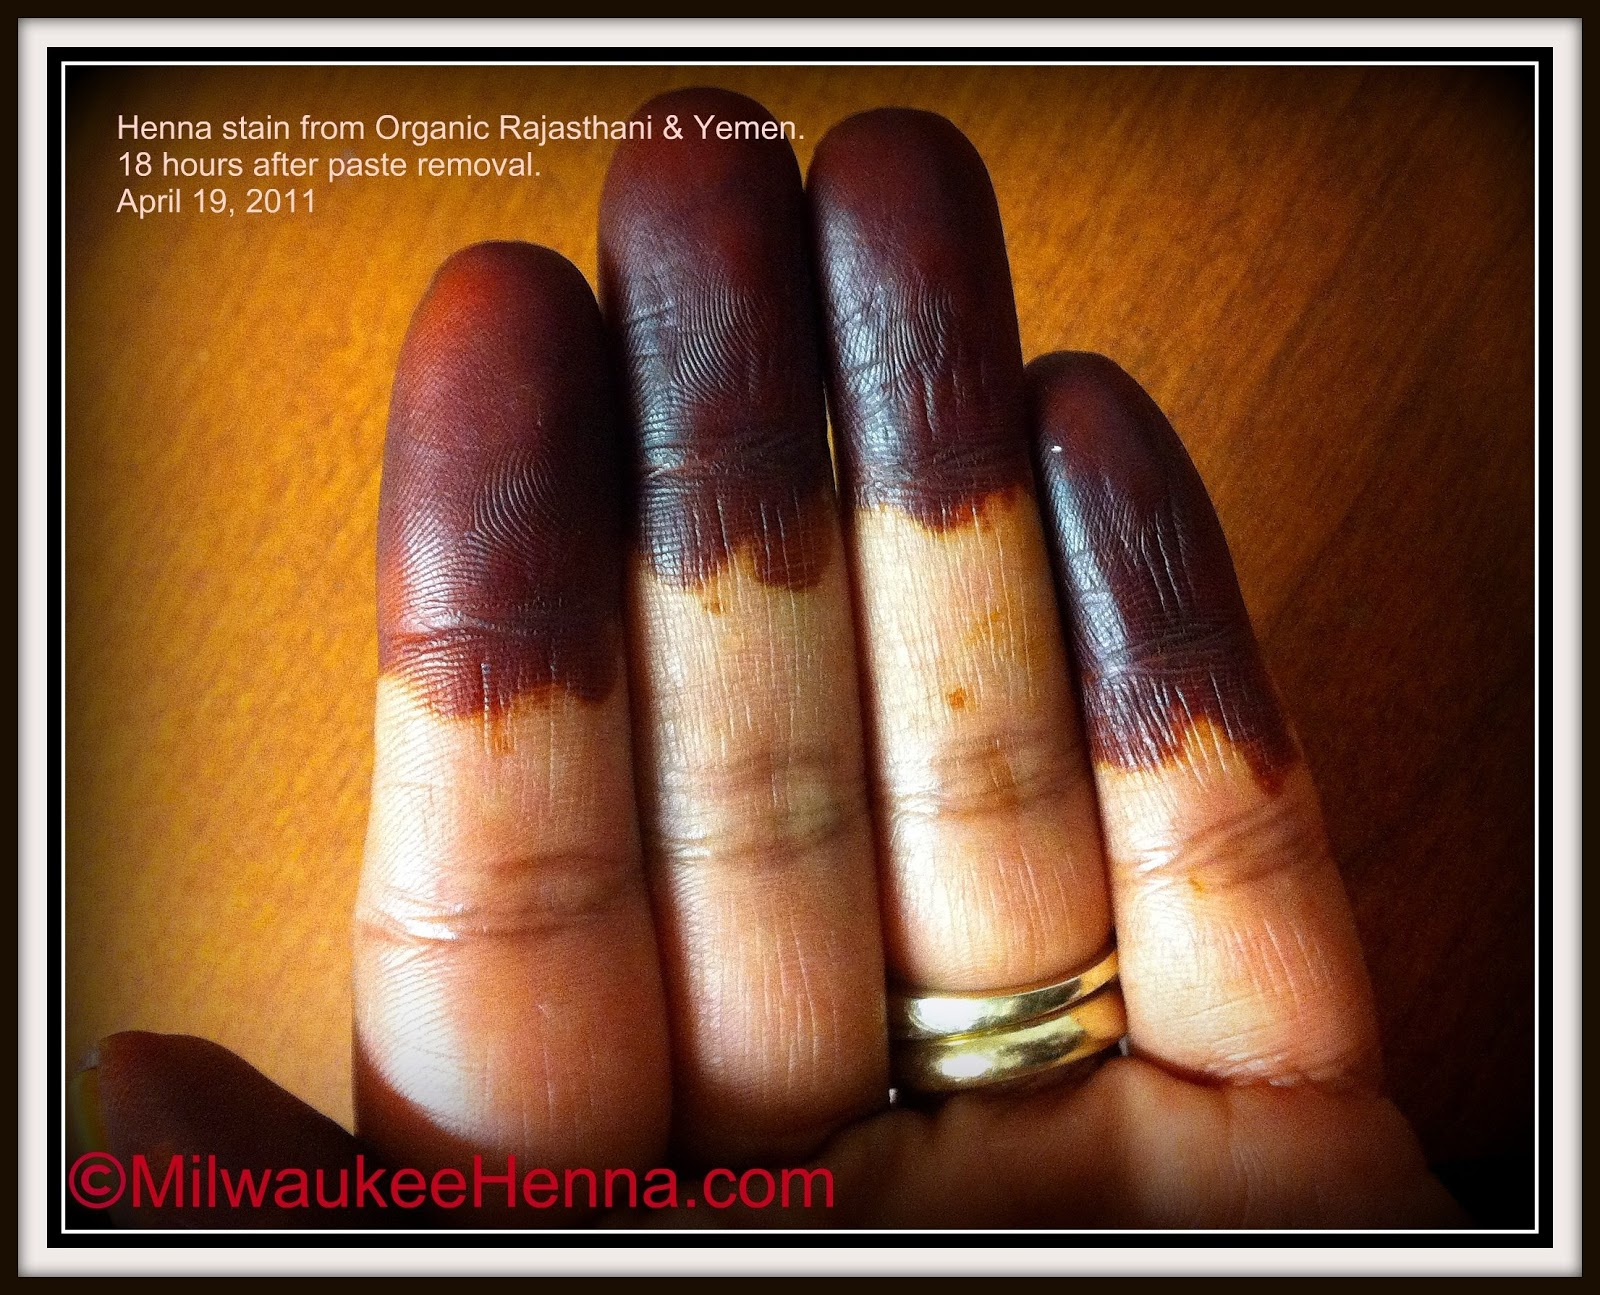 Milwaukeehenna Com Henna Stain From Rajasthani Yemen Powders